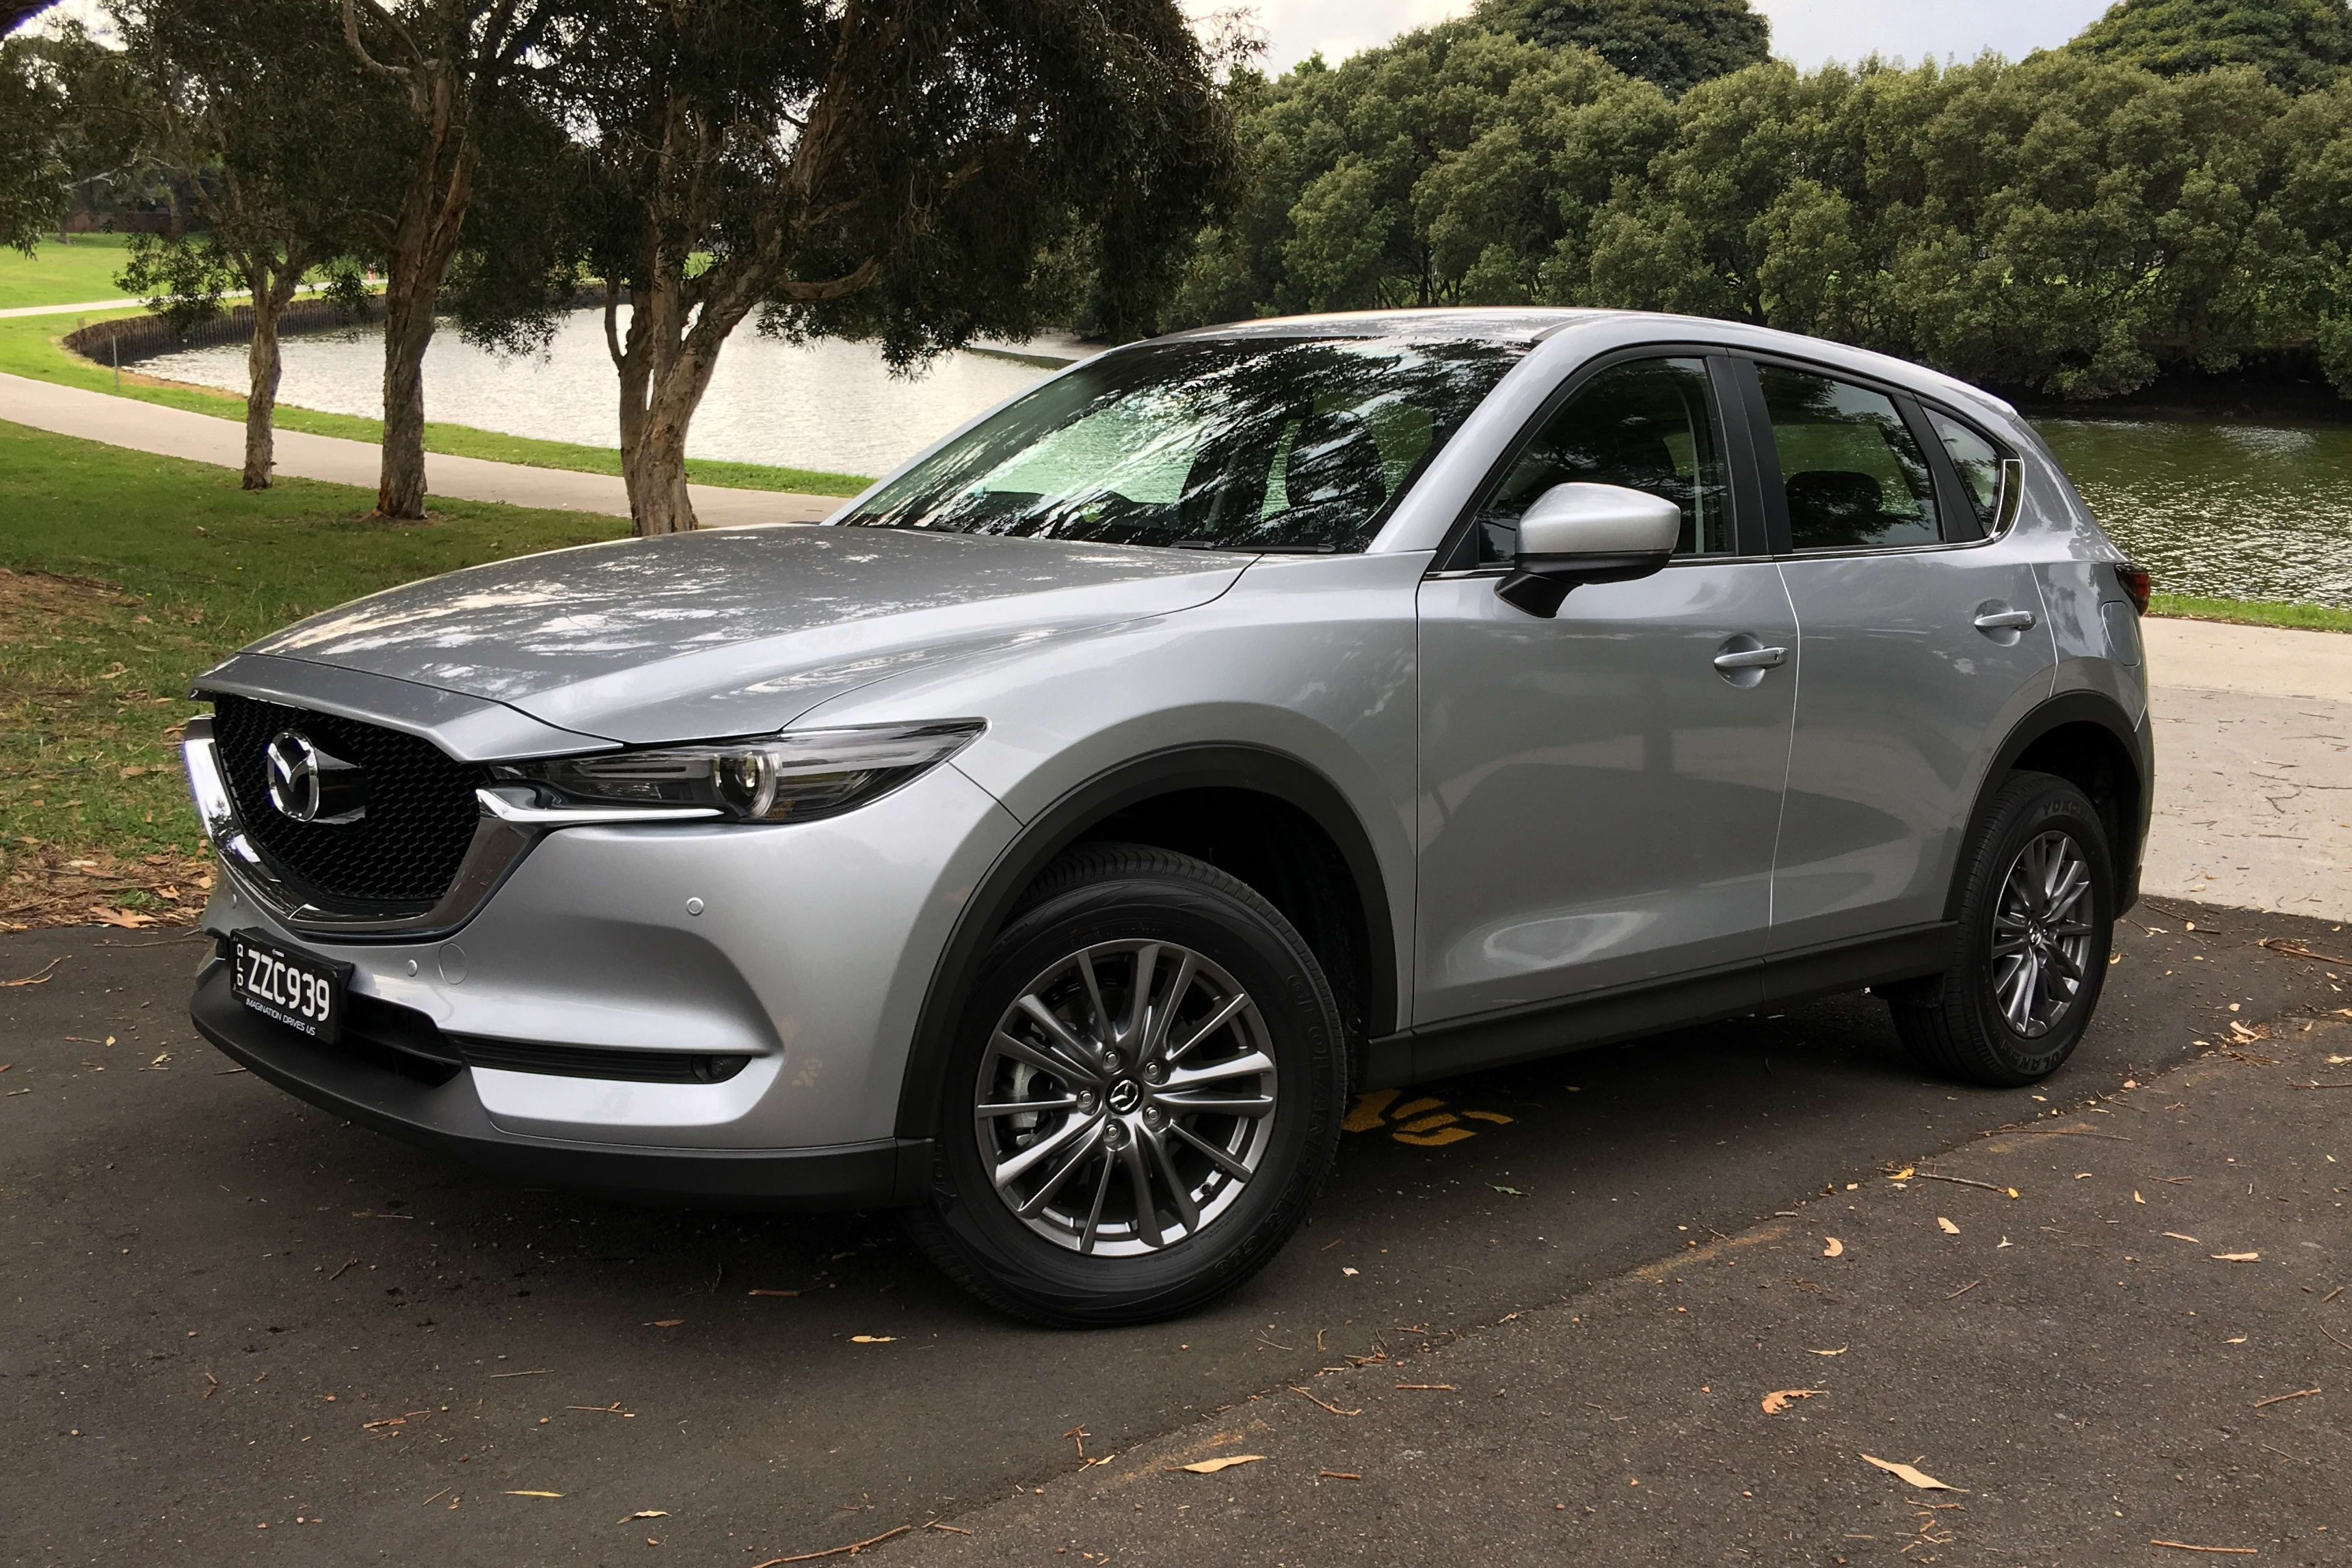 Mazda CX-5 Touring | Mazda CX-5 Touring petrol 2017 review | CarsGuide